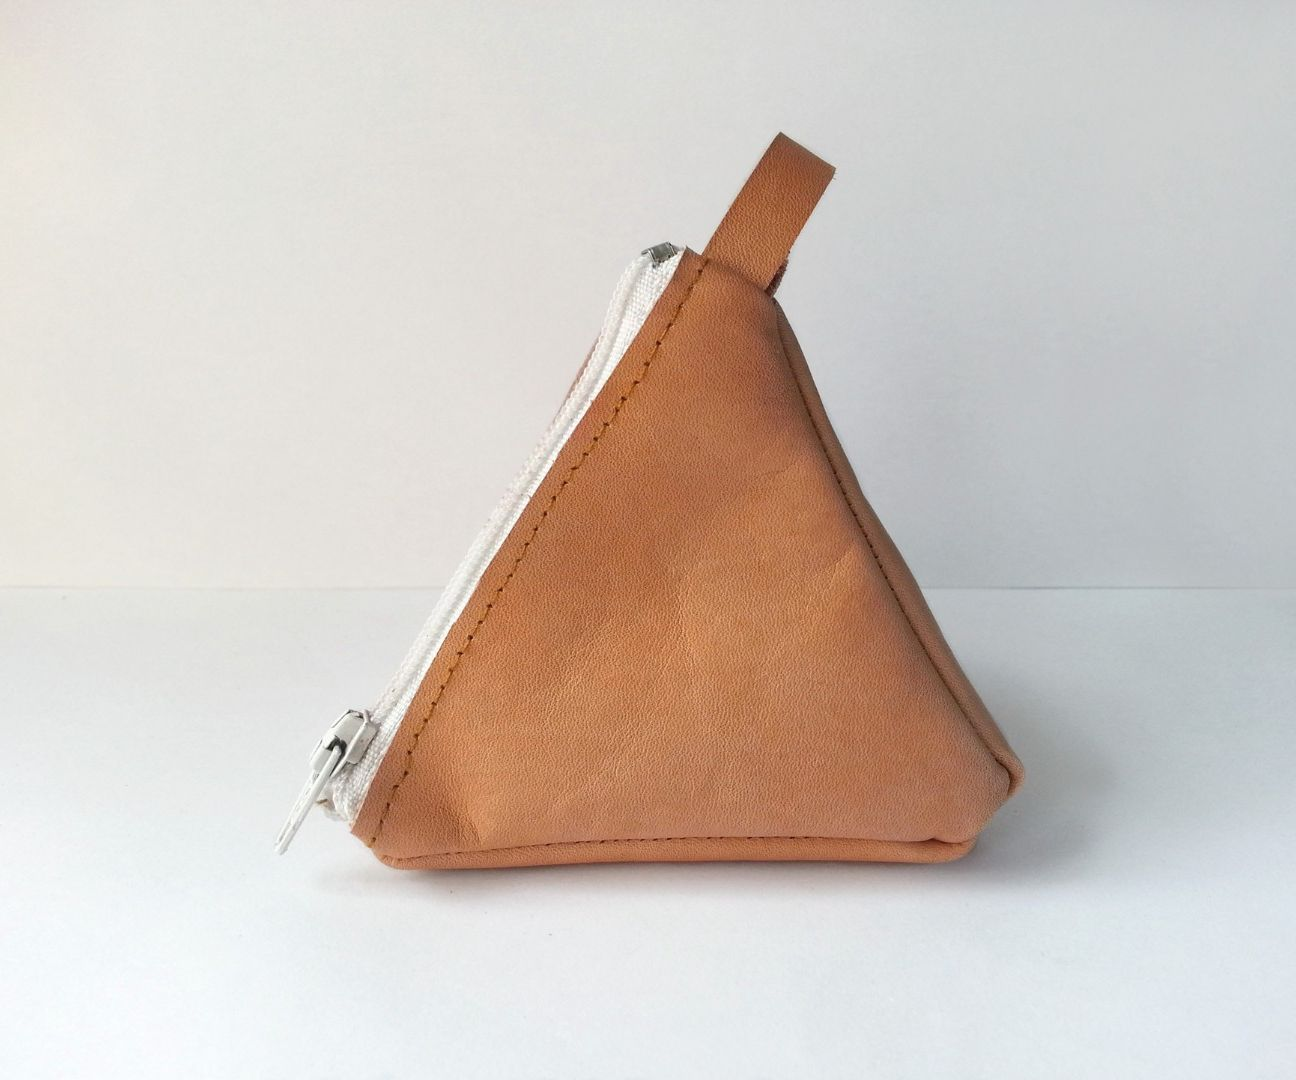 DIY Pyramid Leather Pouch